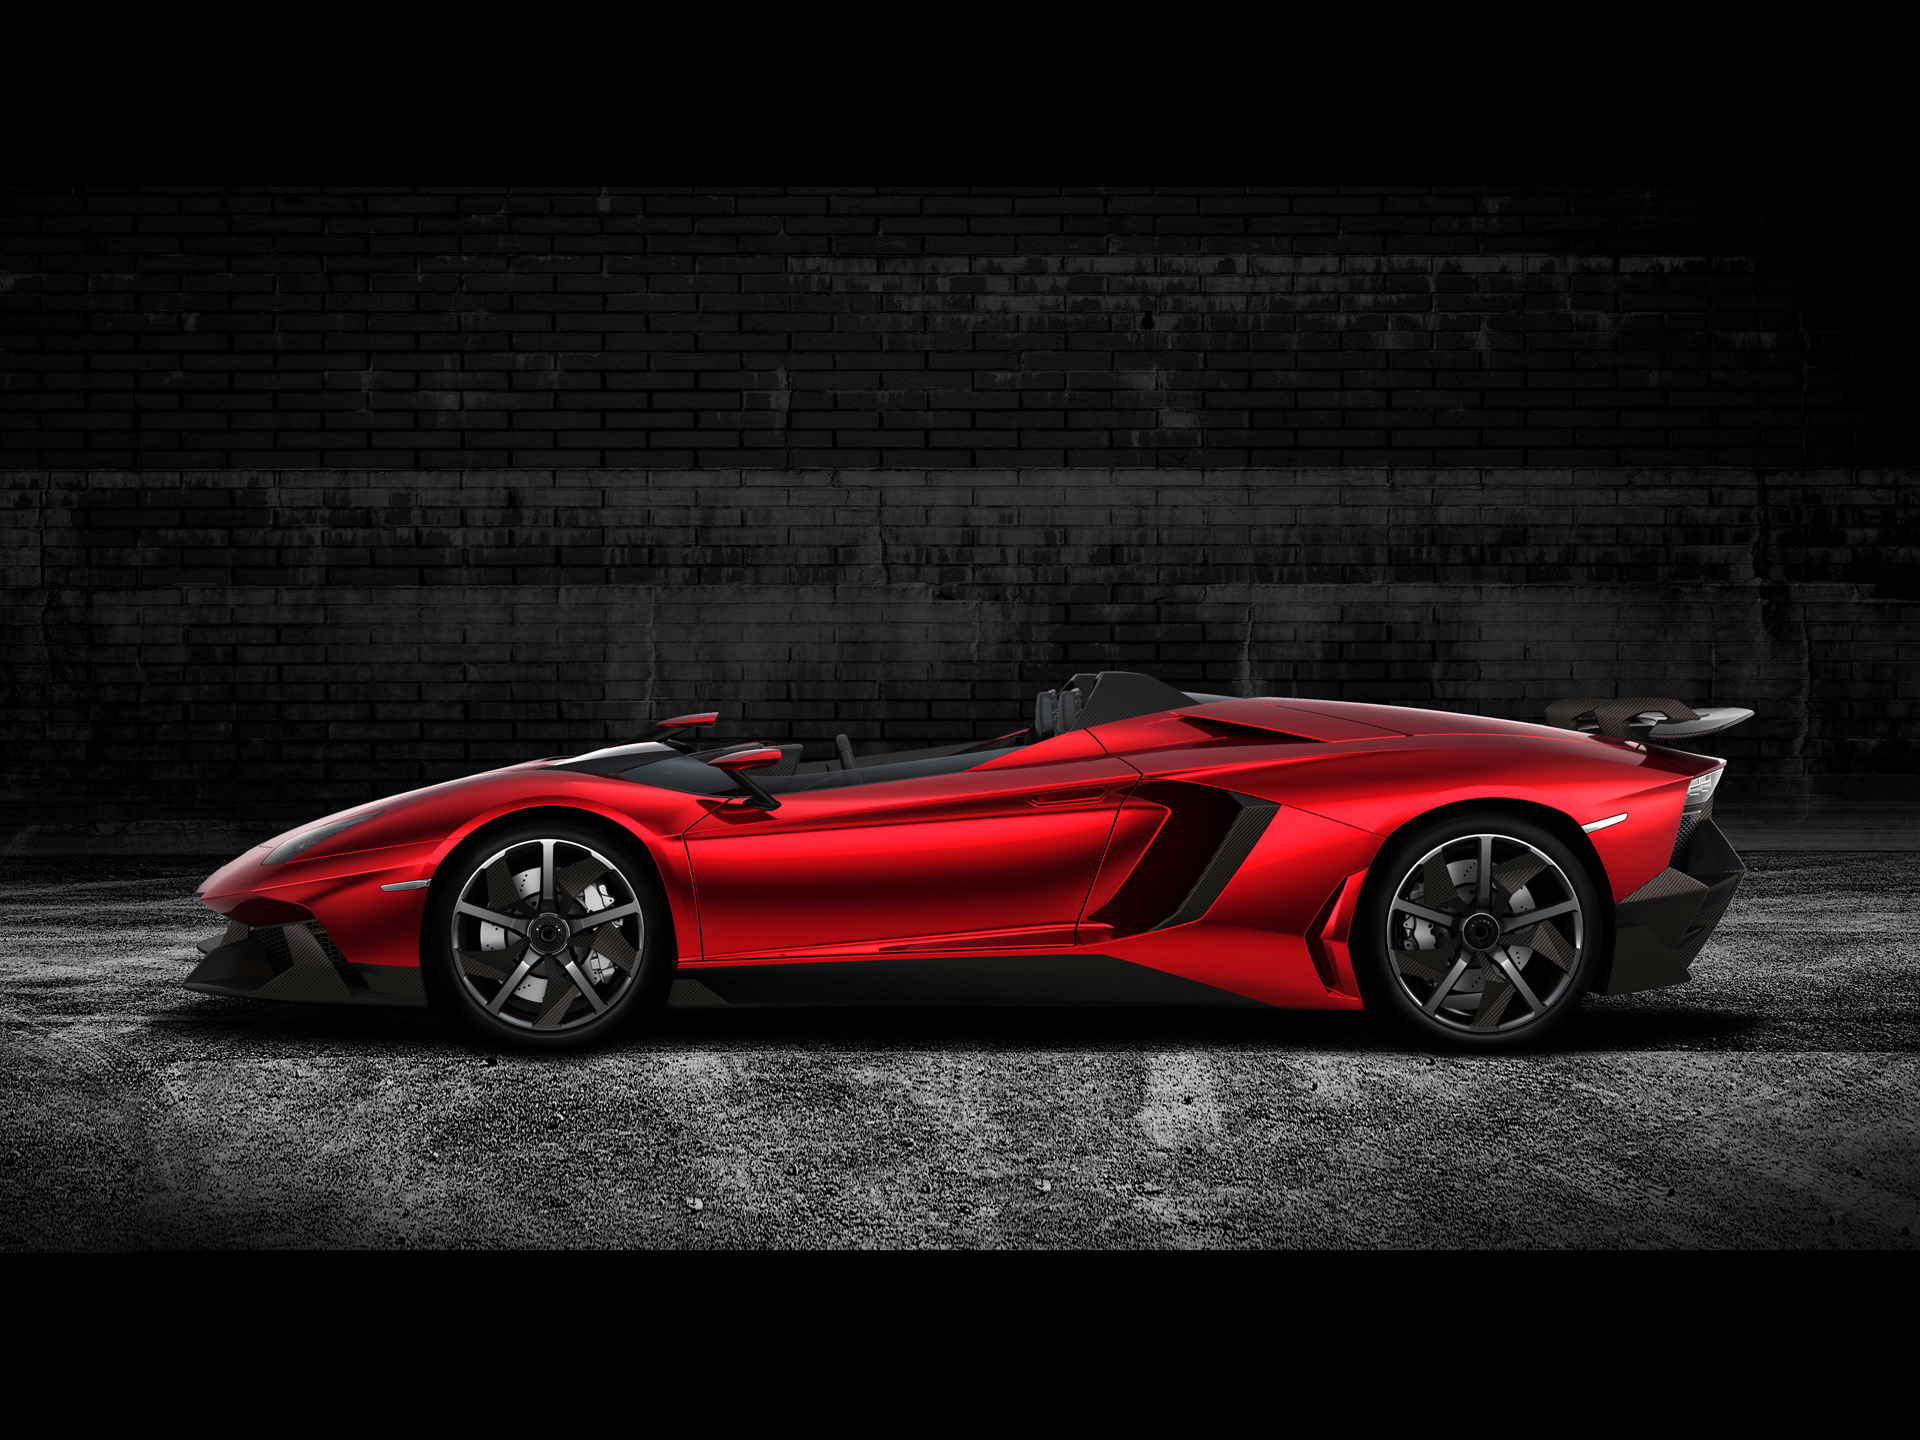 Lamborghini Aventador J Hd Wallpapers 1080p